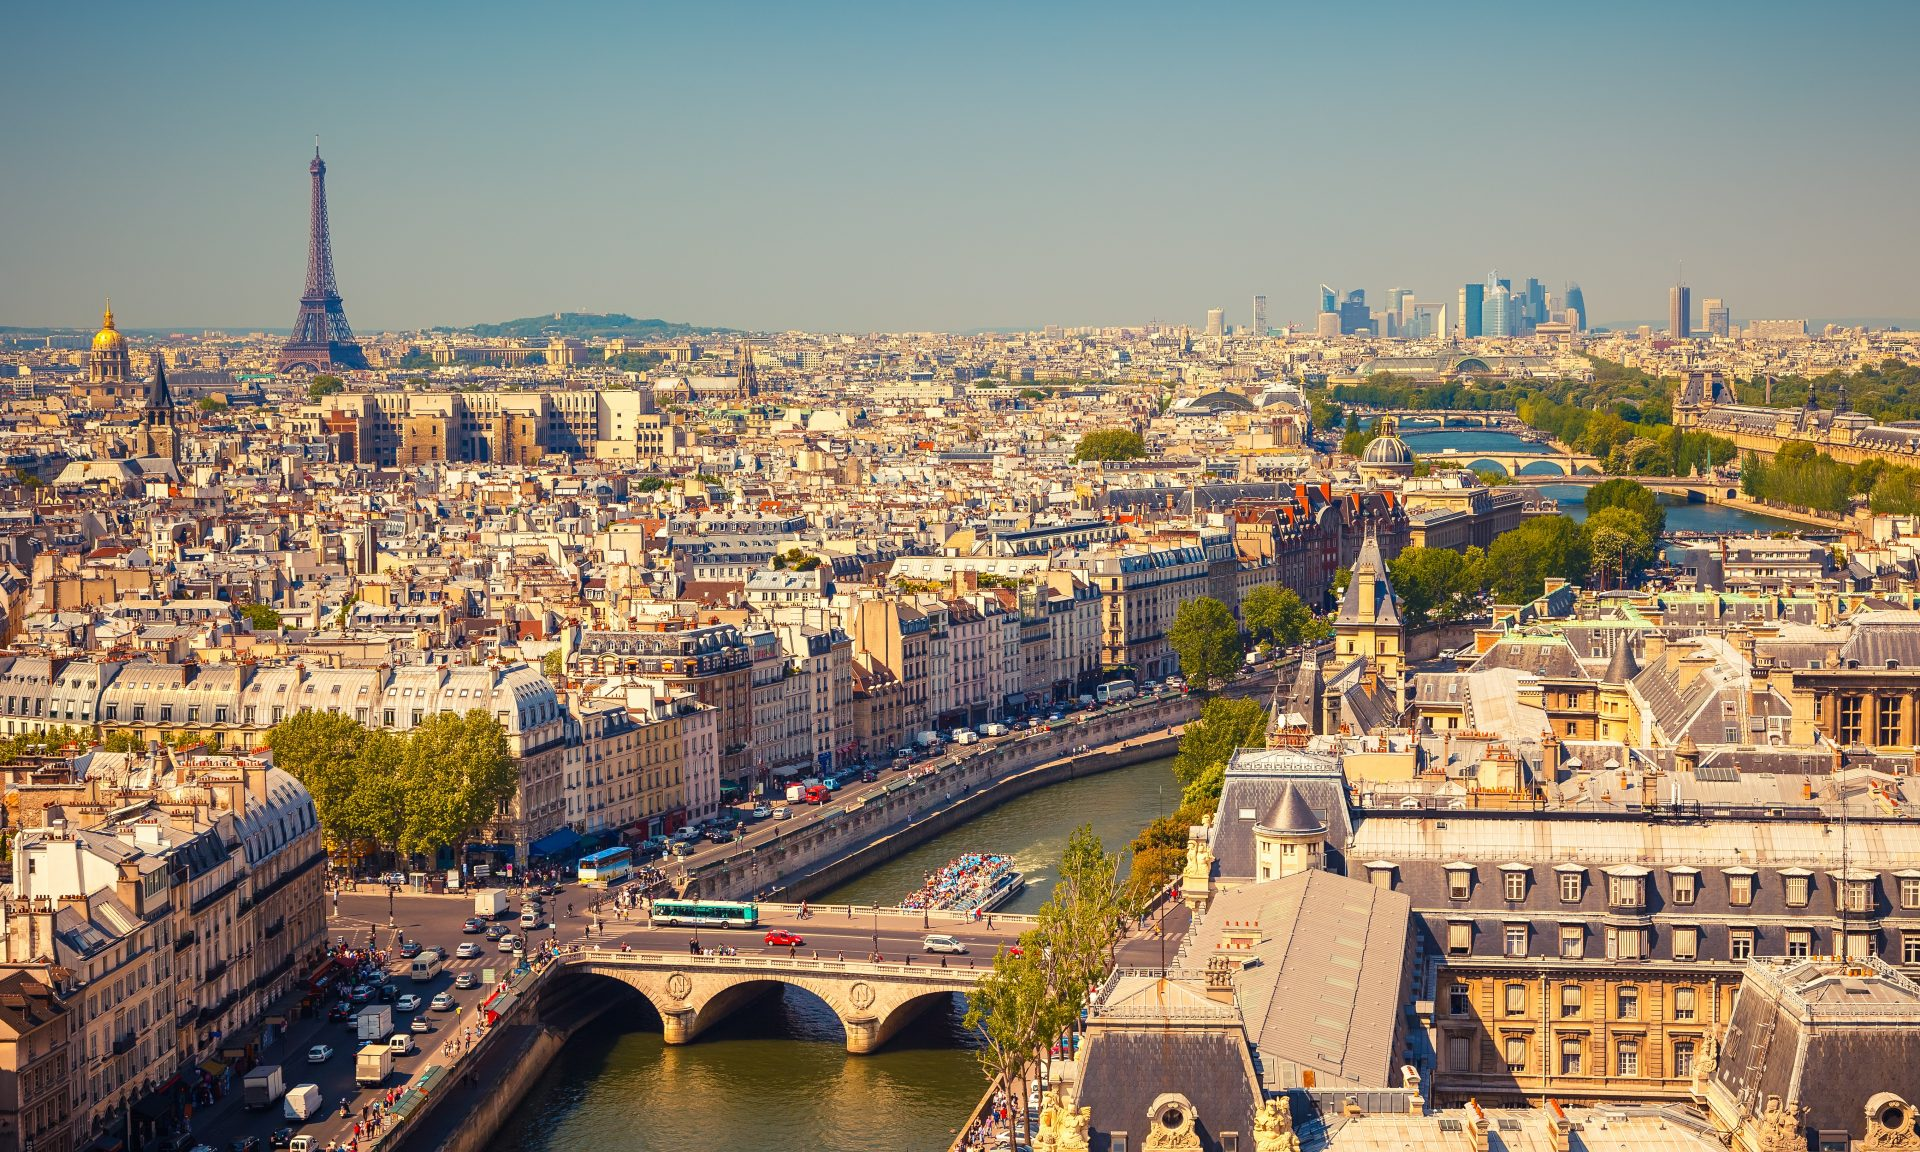 Instantly recognisable, Paris is France's capital and a global centre of fashion, art and culture.